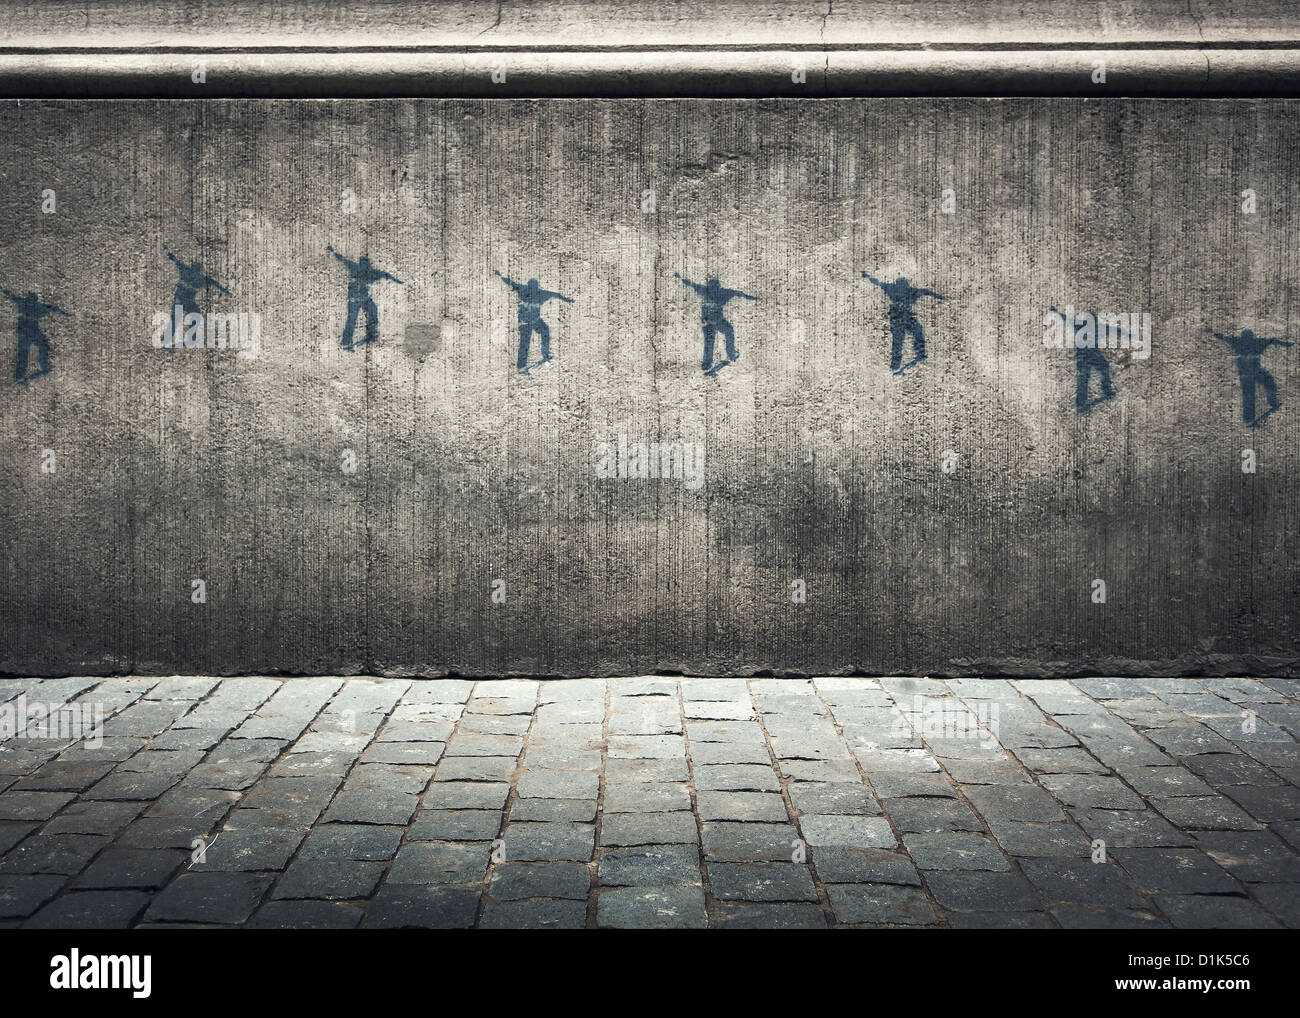 Graffiti series on a concrete wall of a skateboarder moving through the air stock